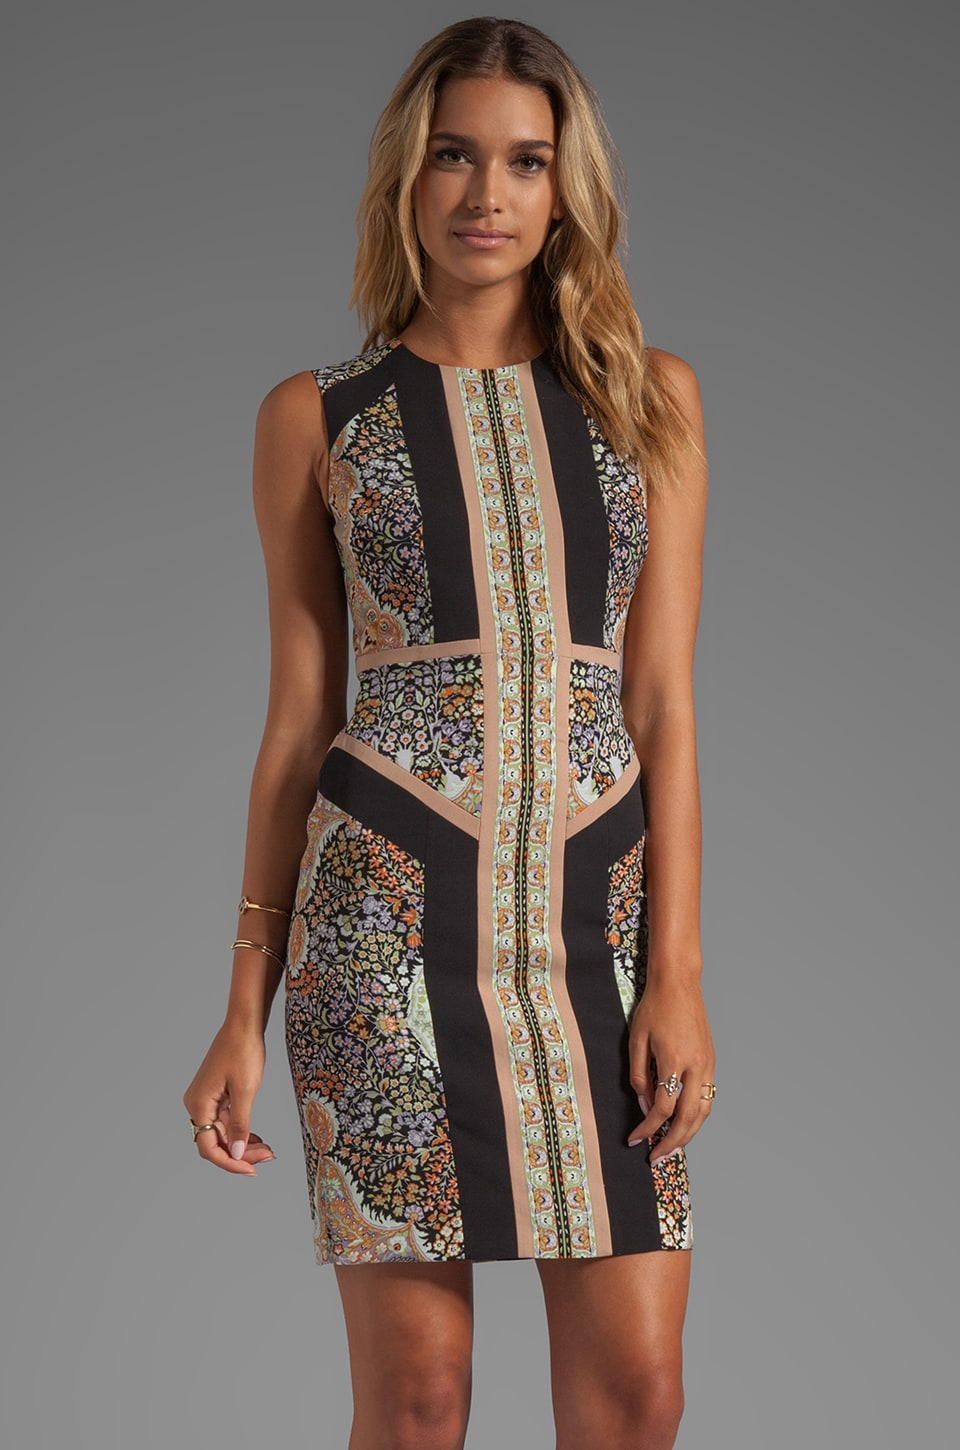 BCBGMAXAZRIA Lauren Sleeveless Printed Dress in Slate Combo